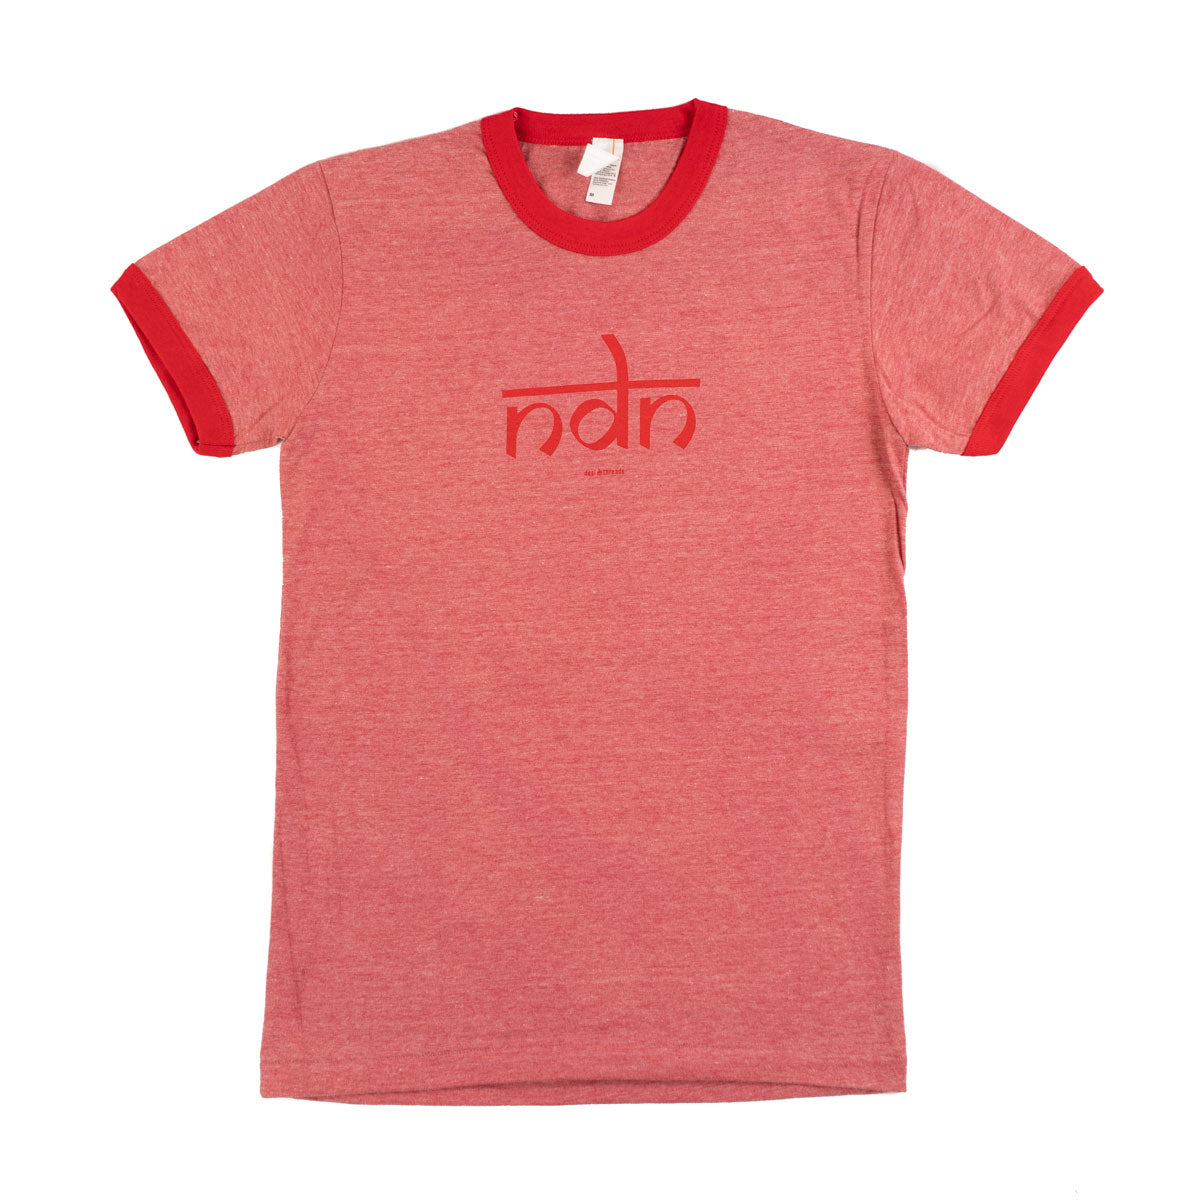 Ndn (Indian) Women's Vintage Ringer Tee